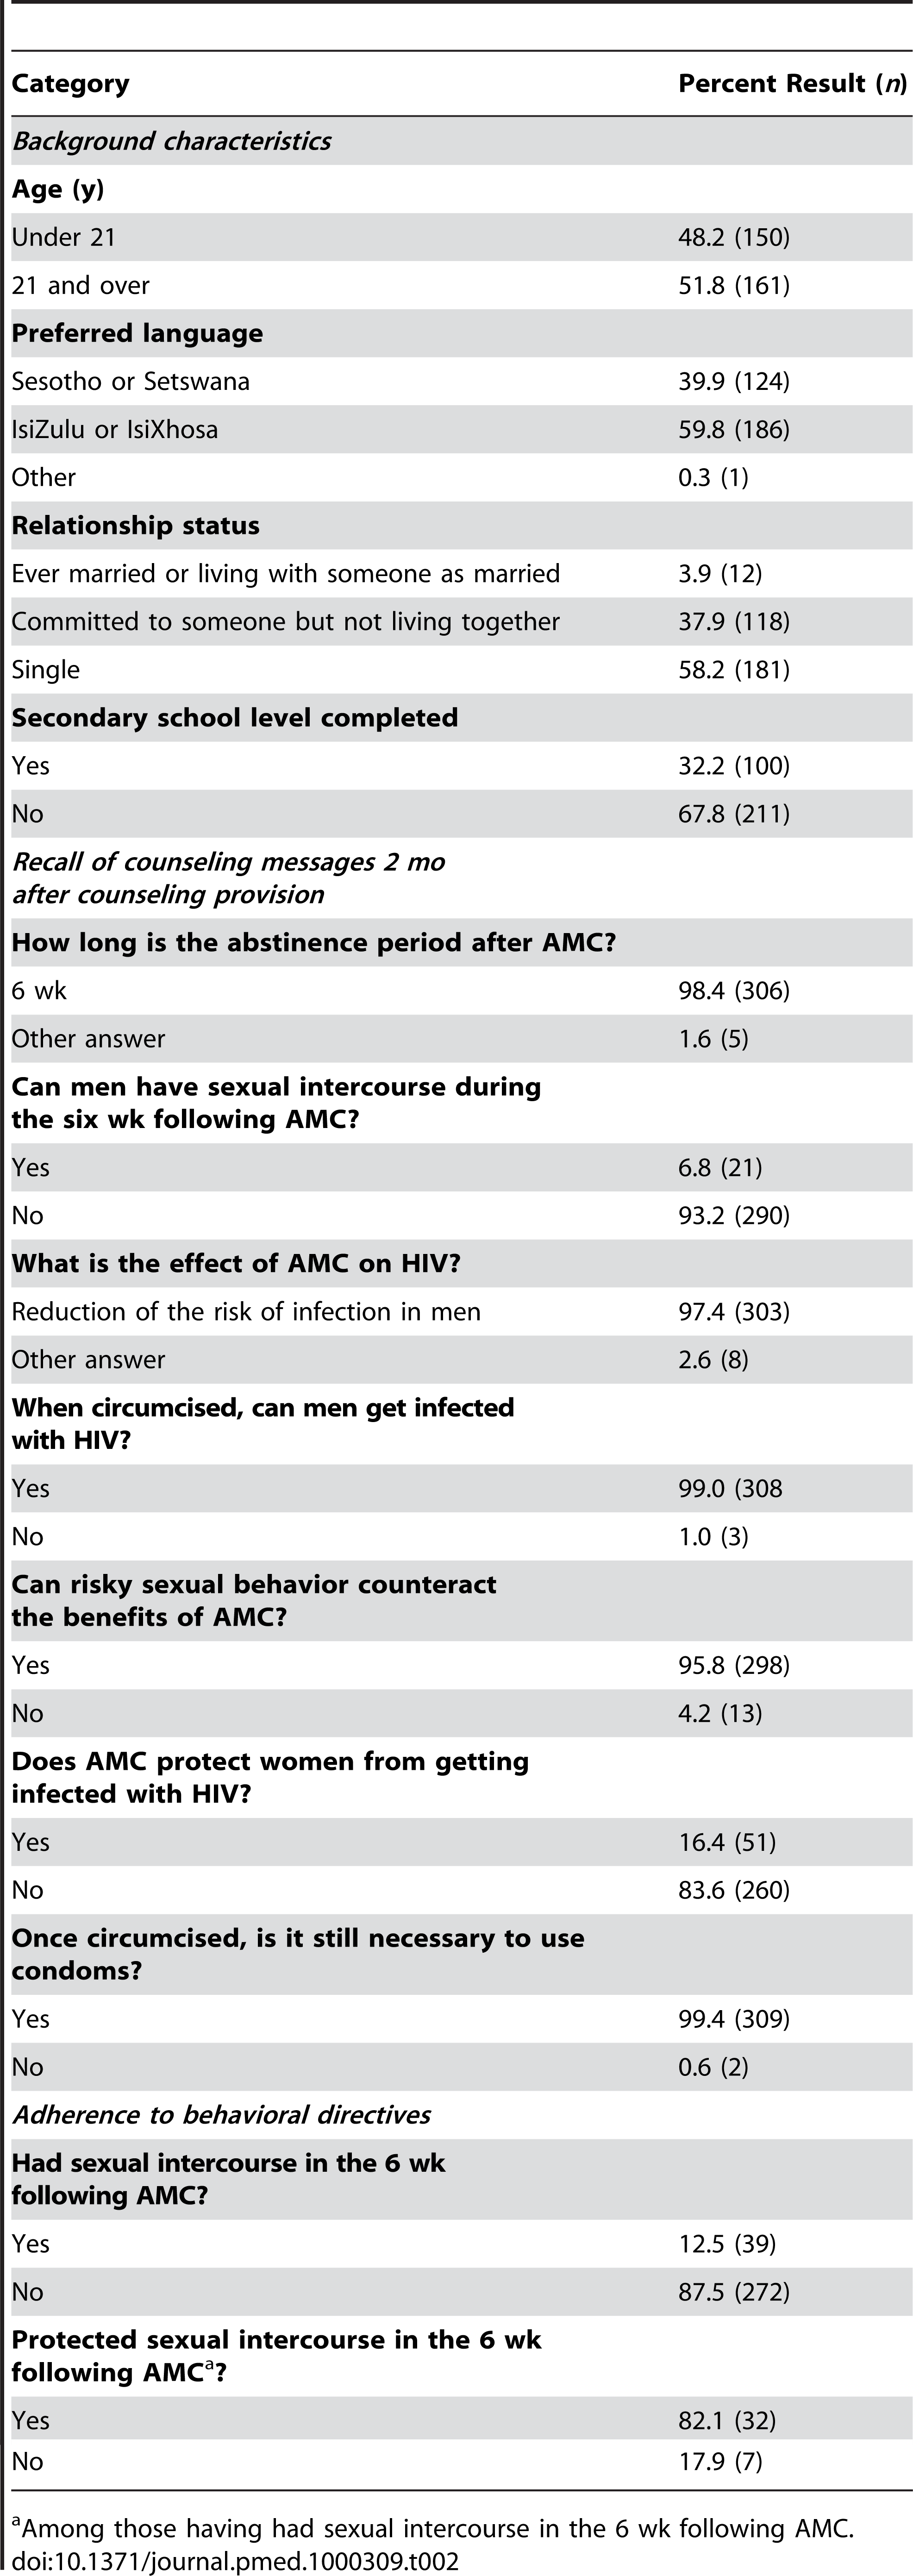 Counseling recall and adherence to behavioral directives among a subsample of men (<i>n</i>=311) undergoing AMC.